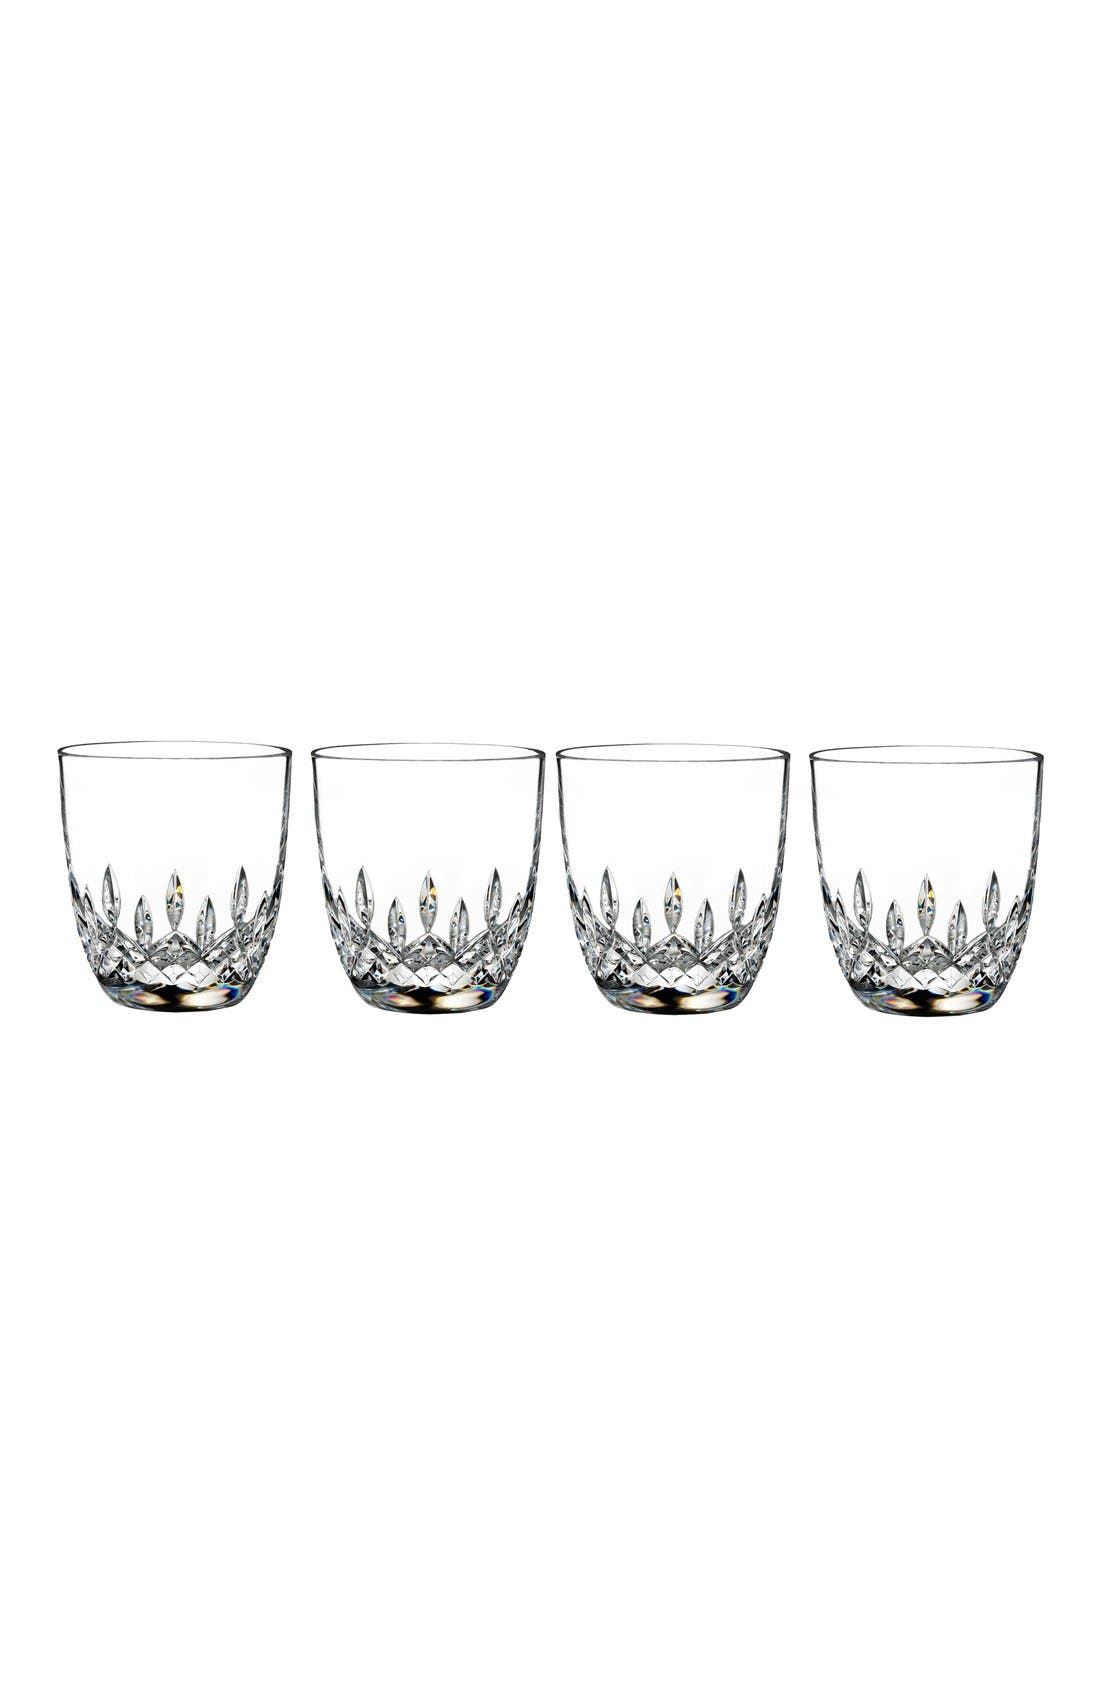 Alternate Image 1 Selected - Waterford 'Lismore Encore' Lead Crystal Double Old-Fashioned Glasses (Set of 4)